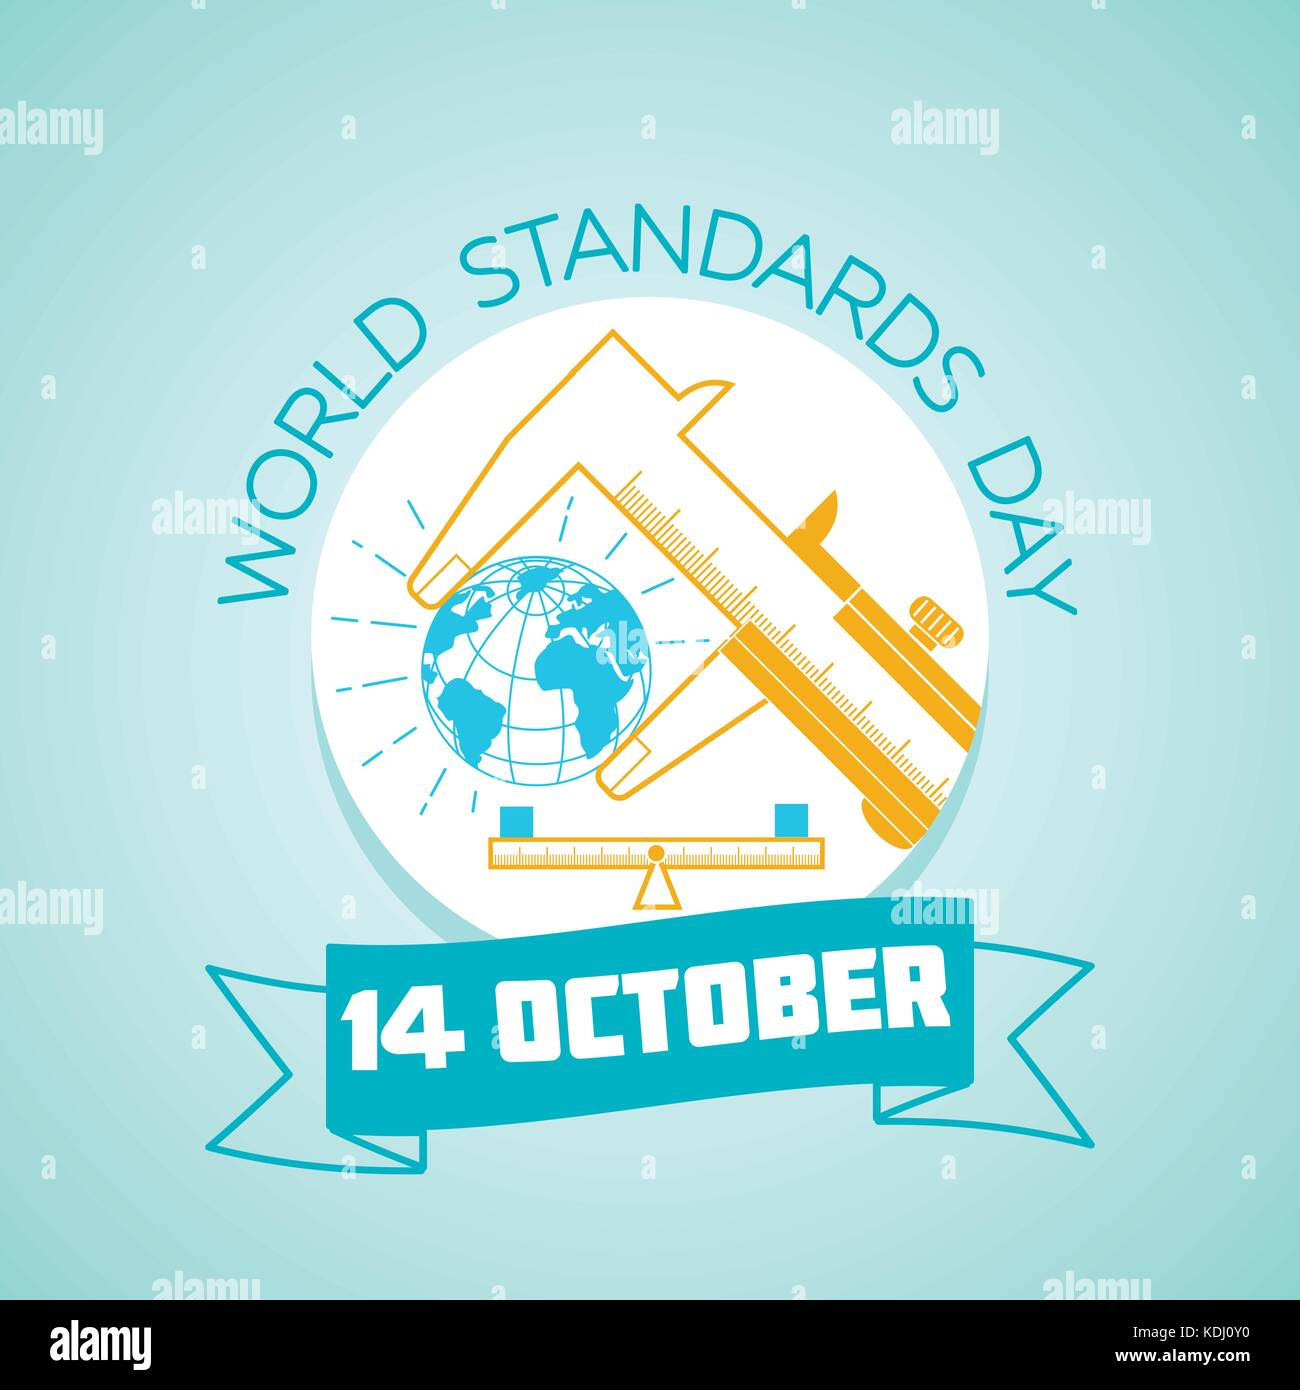 Calendar for each day on october 14. Greeting card. Holiday - World Standards Day. Icon in the linear style - Stock Image